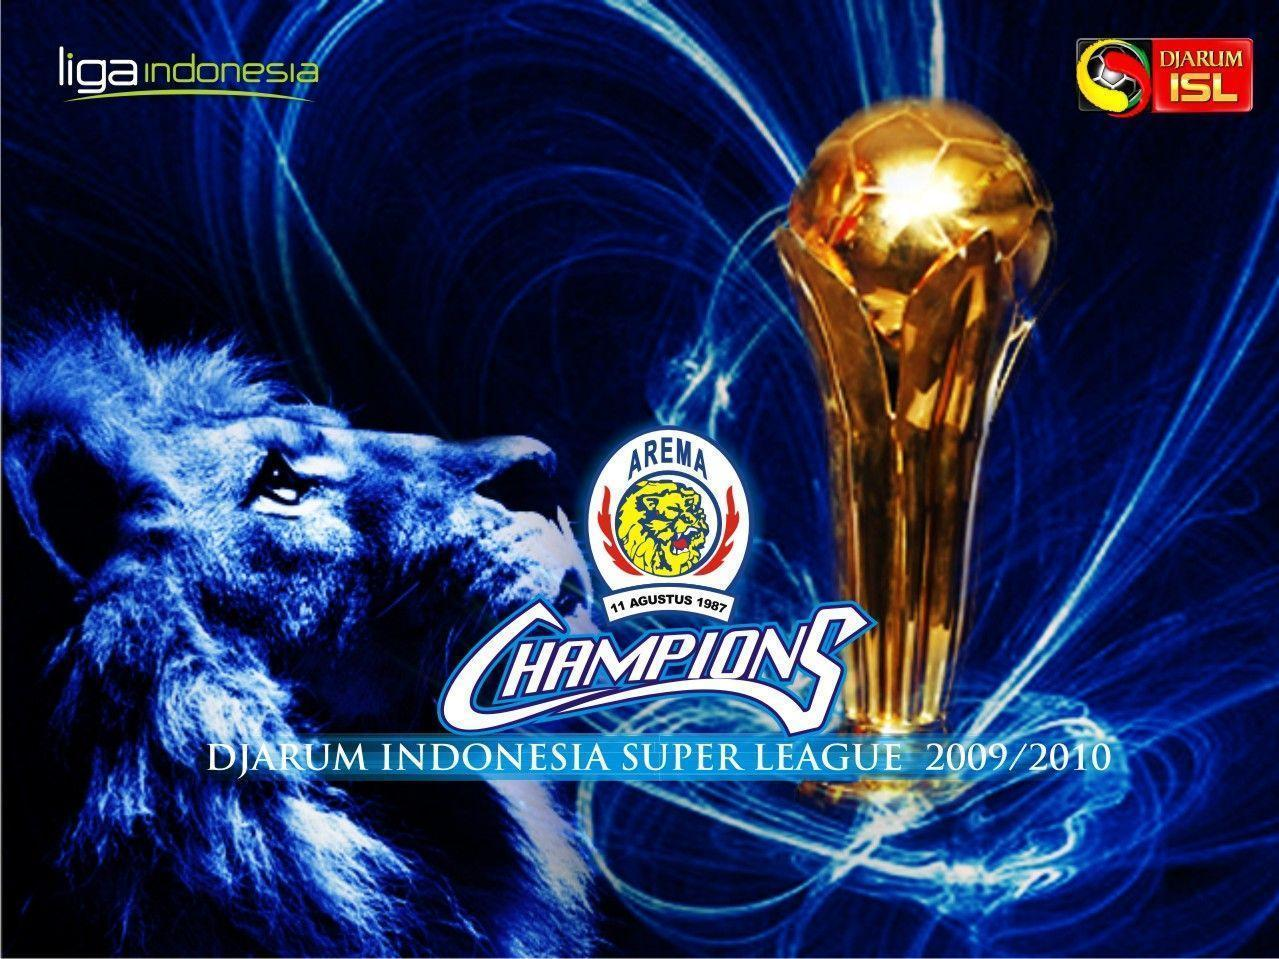 Arema Wallpapers Top Free Arema Backgrounds WallpaperAccess